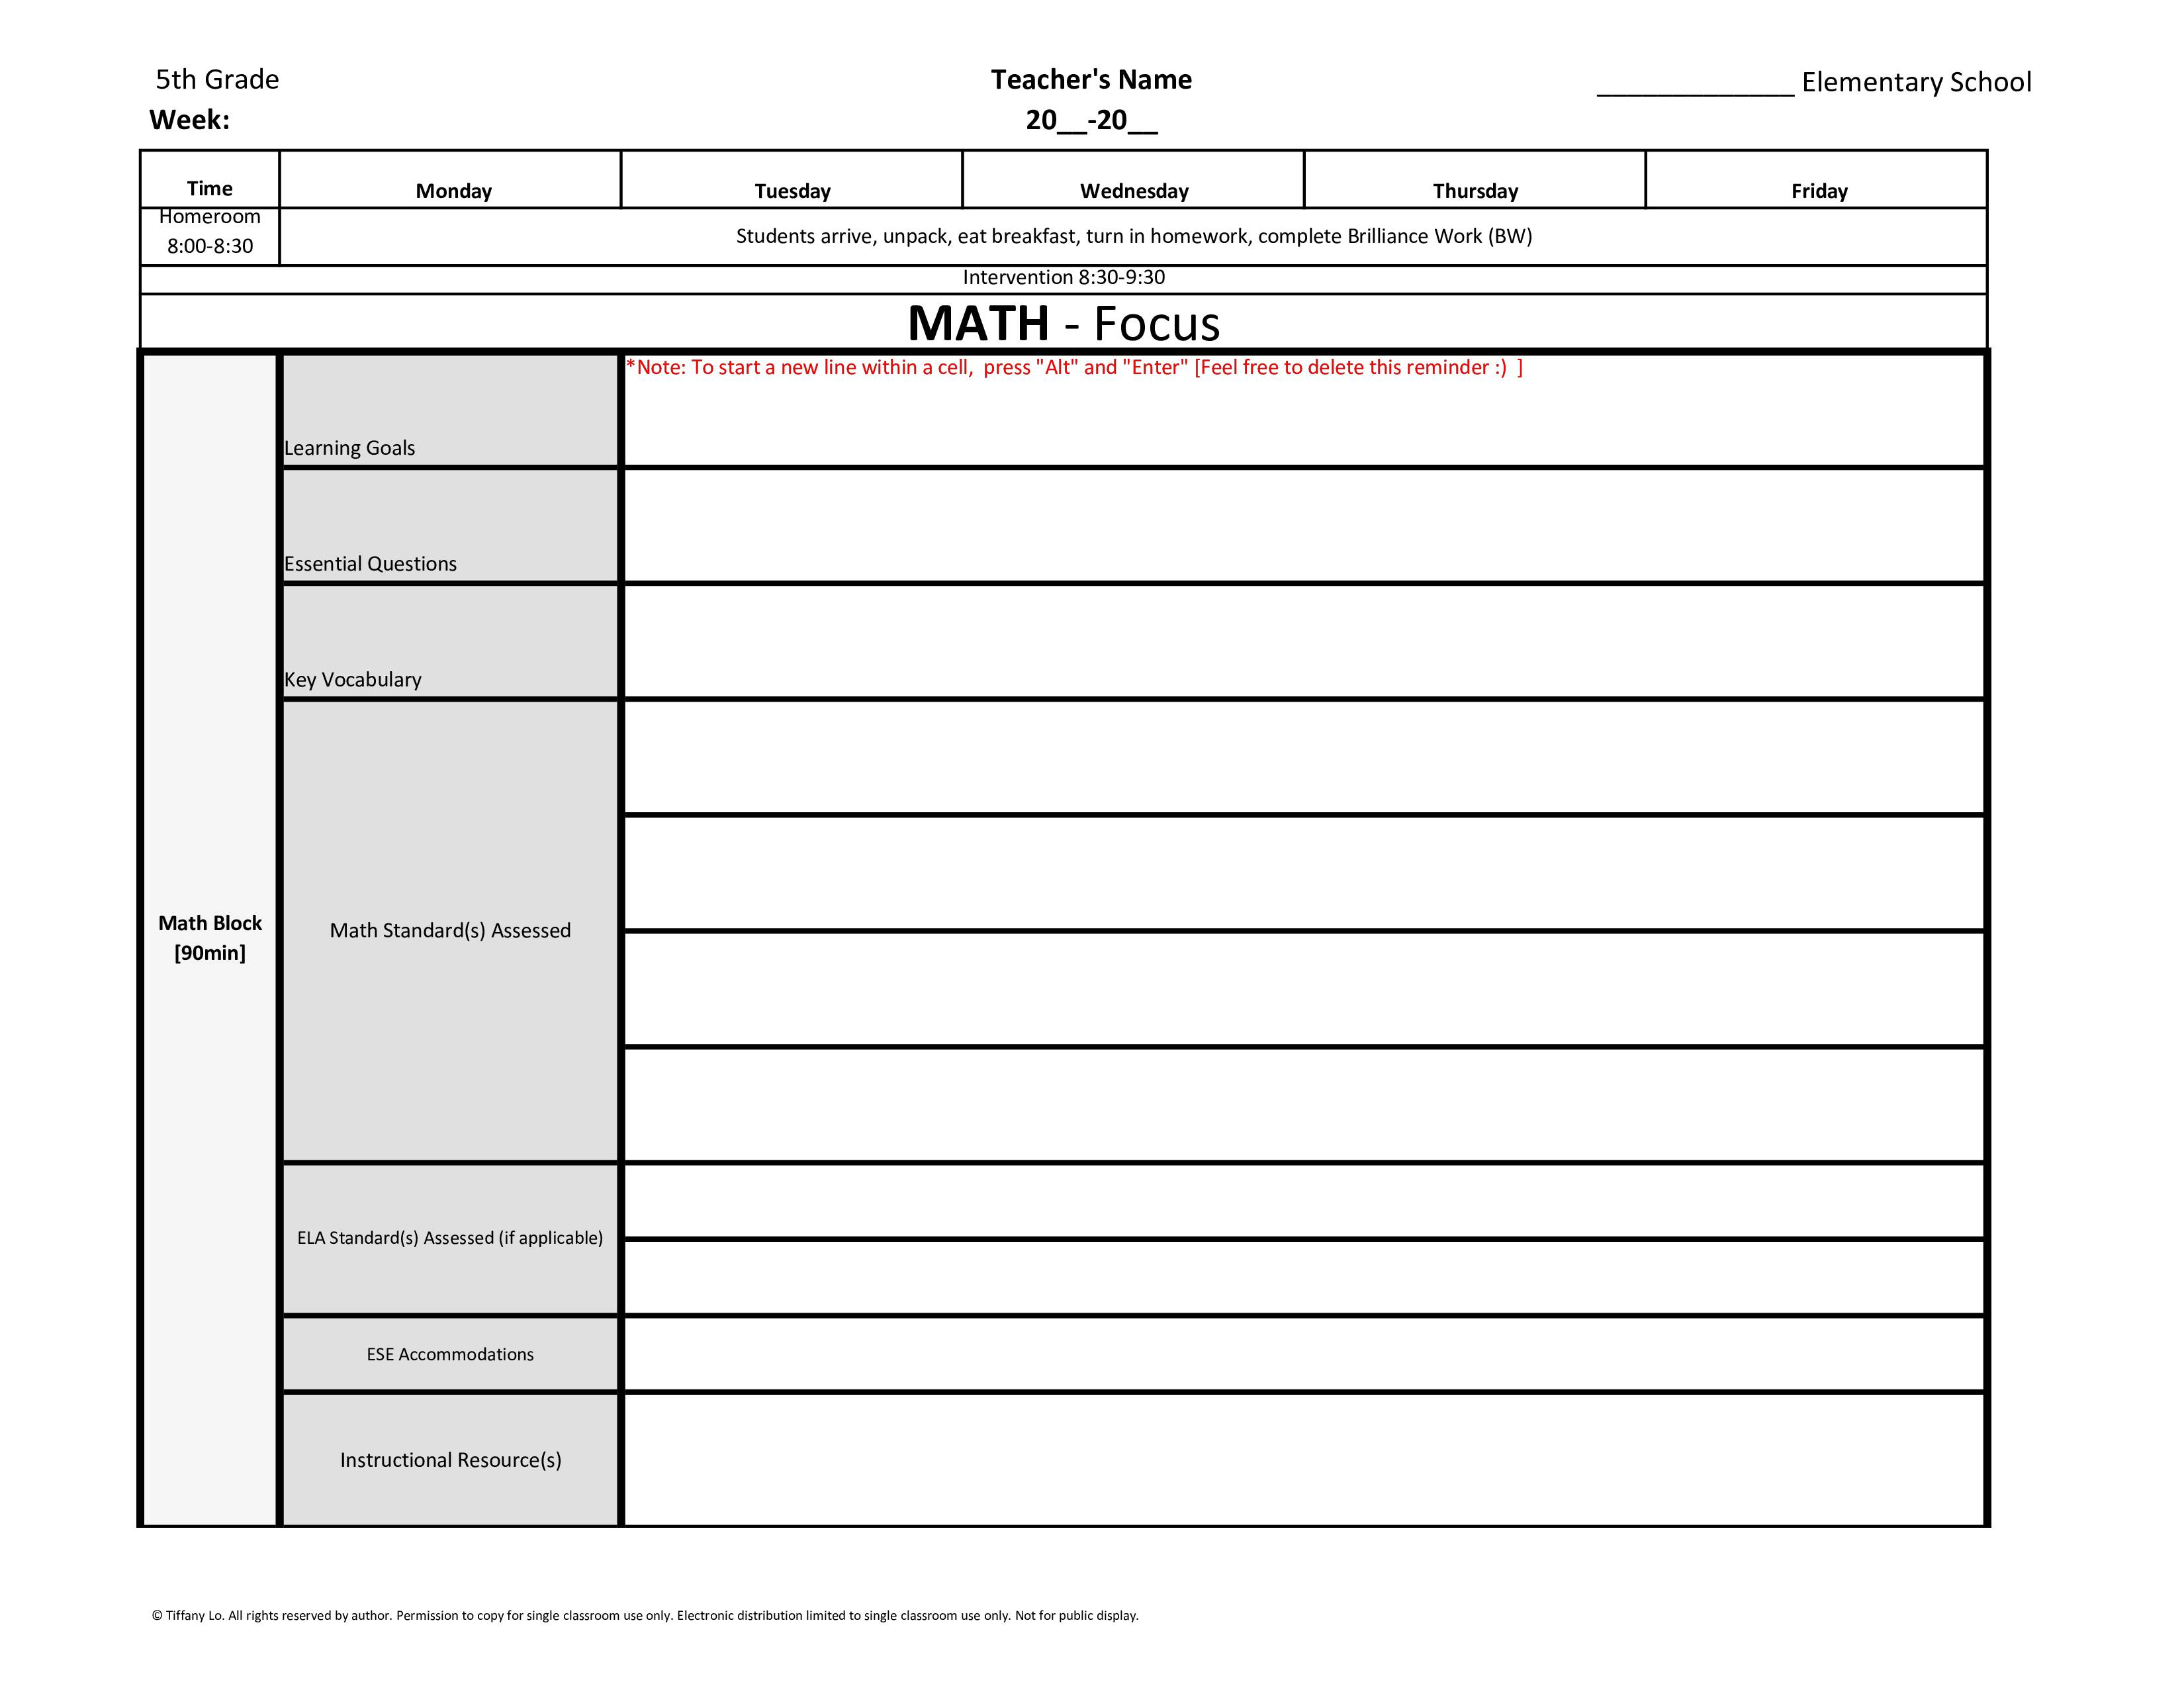 Th Fifth Grade Common Core Weekly Lesson Plan Template W Drop - Common core math lesson plan template